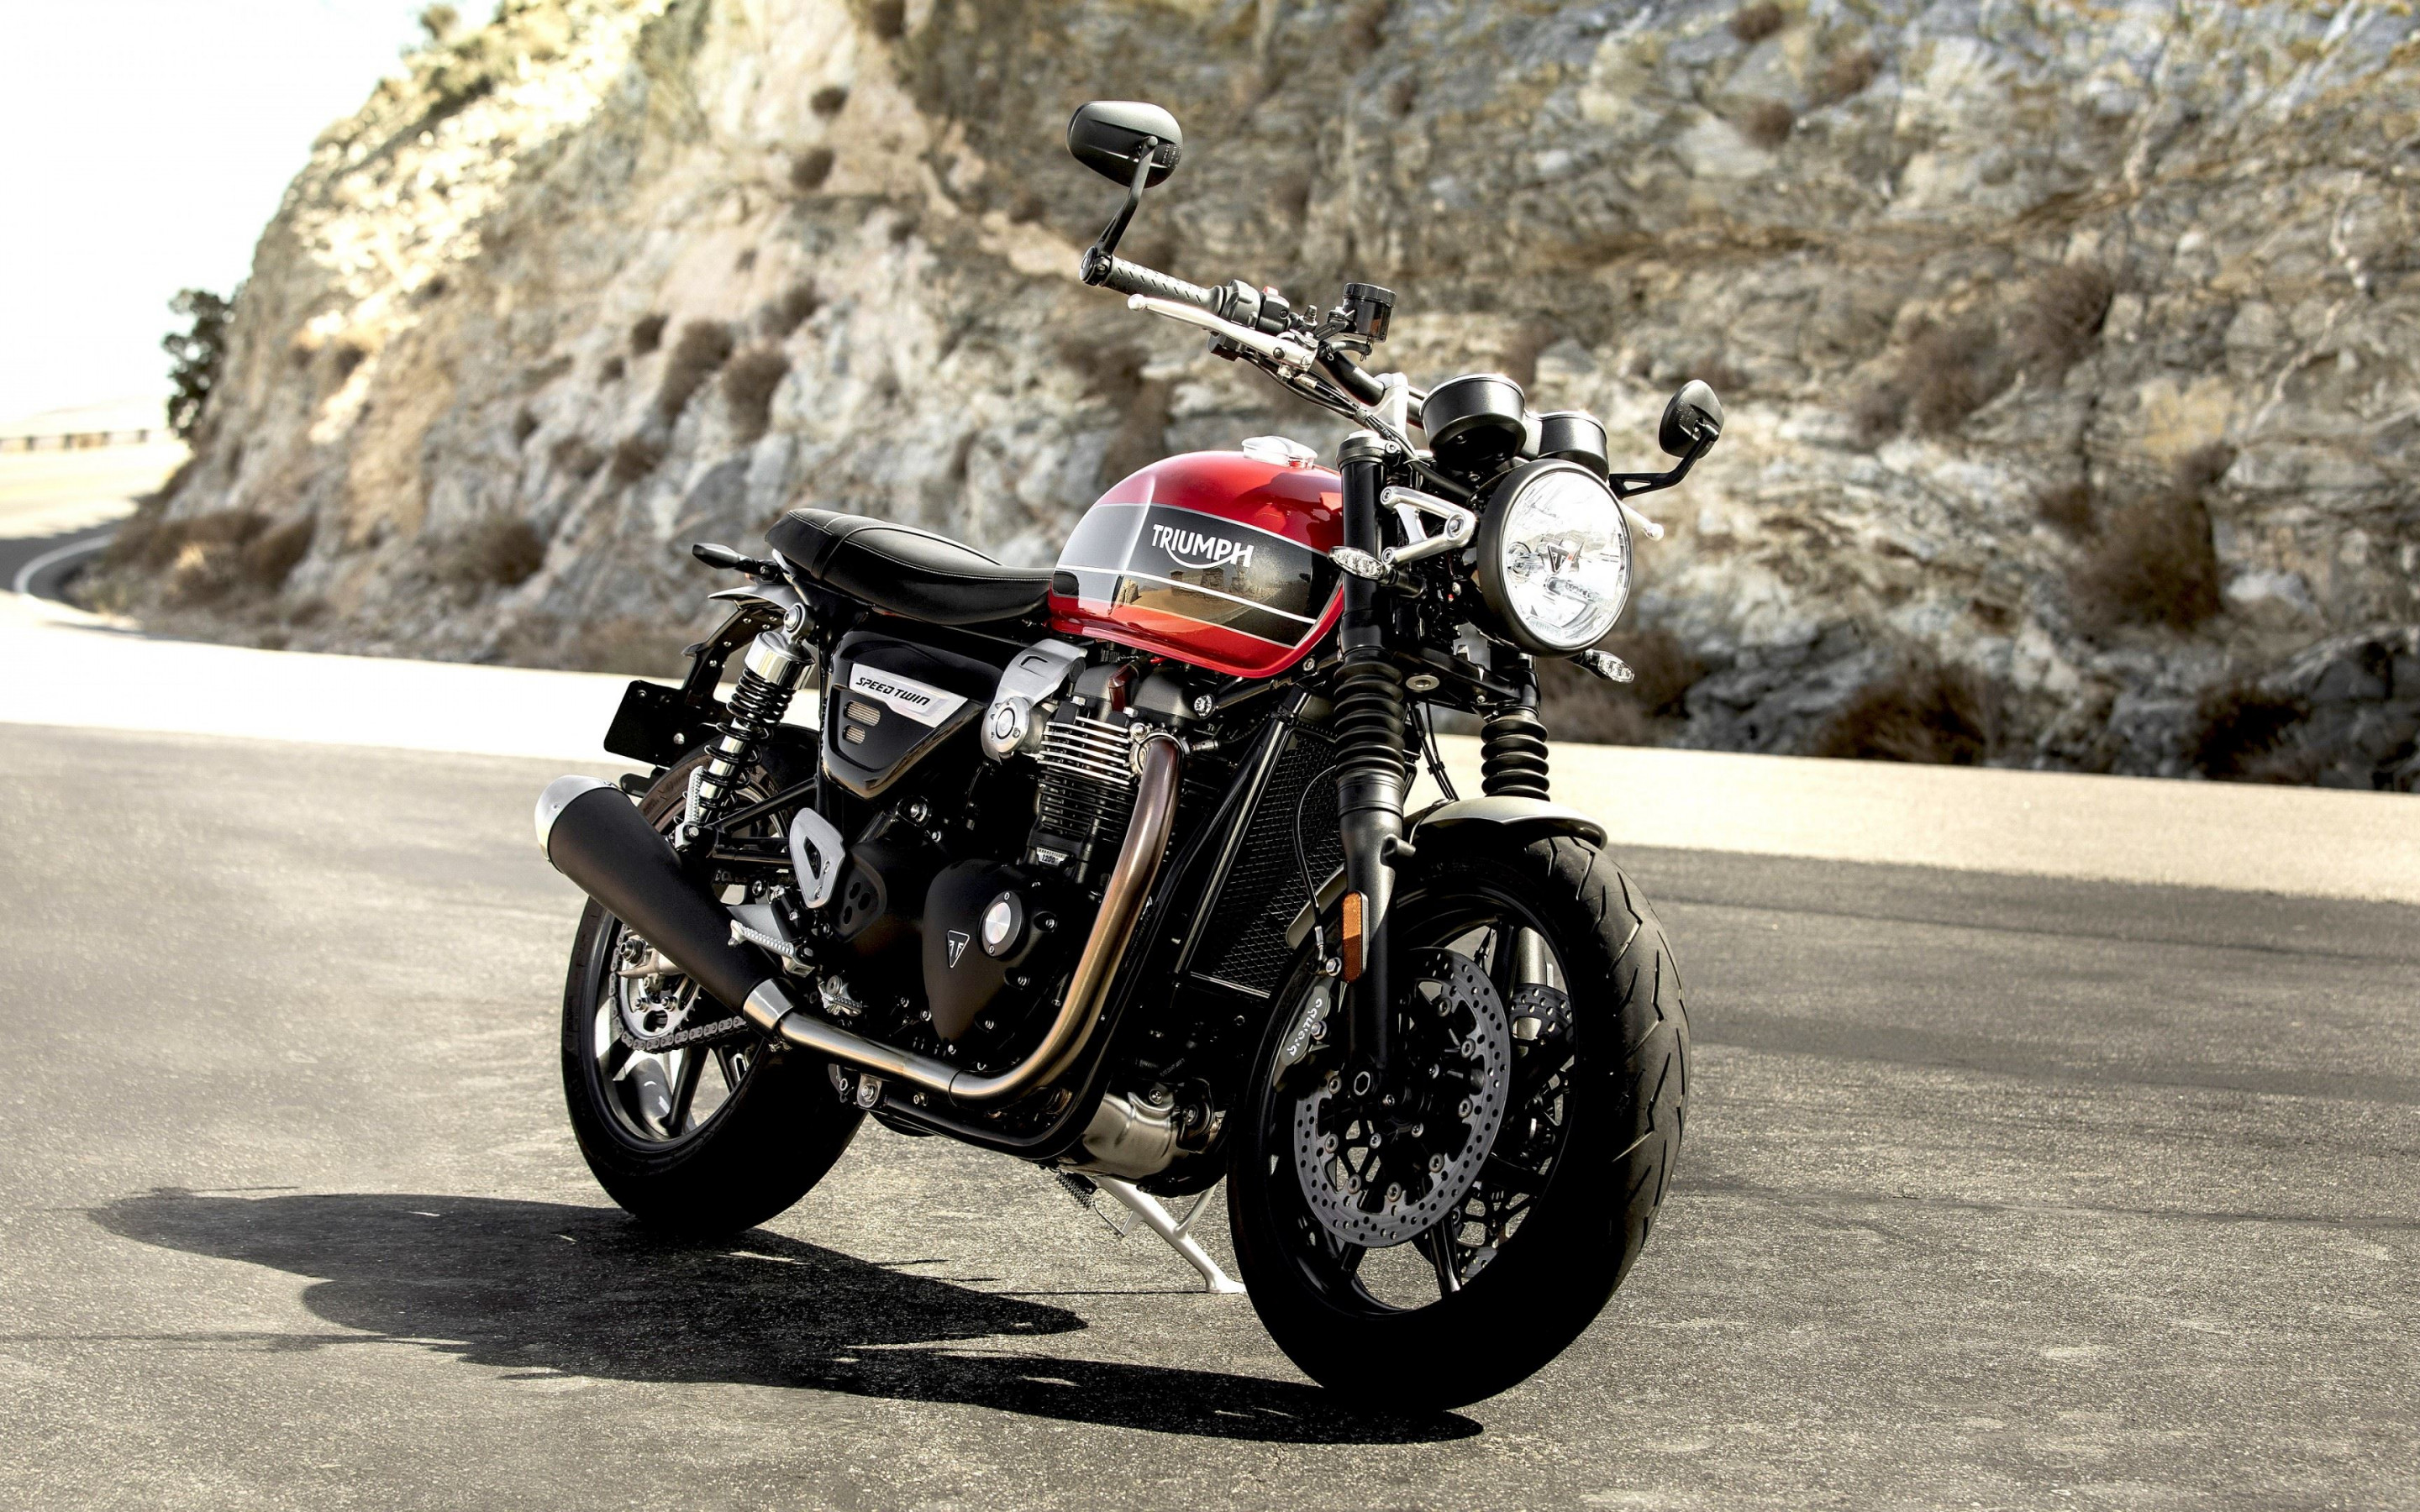 Triumph Speed Twin wallpaper 2880x1800